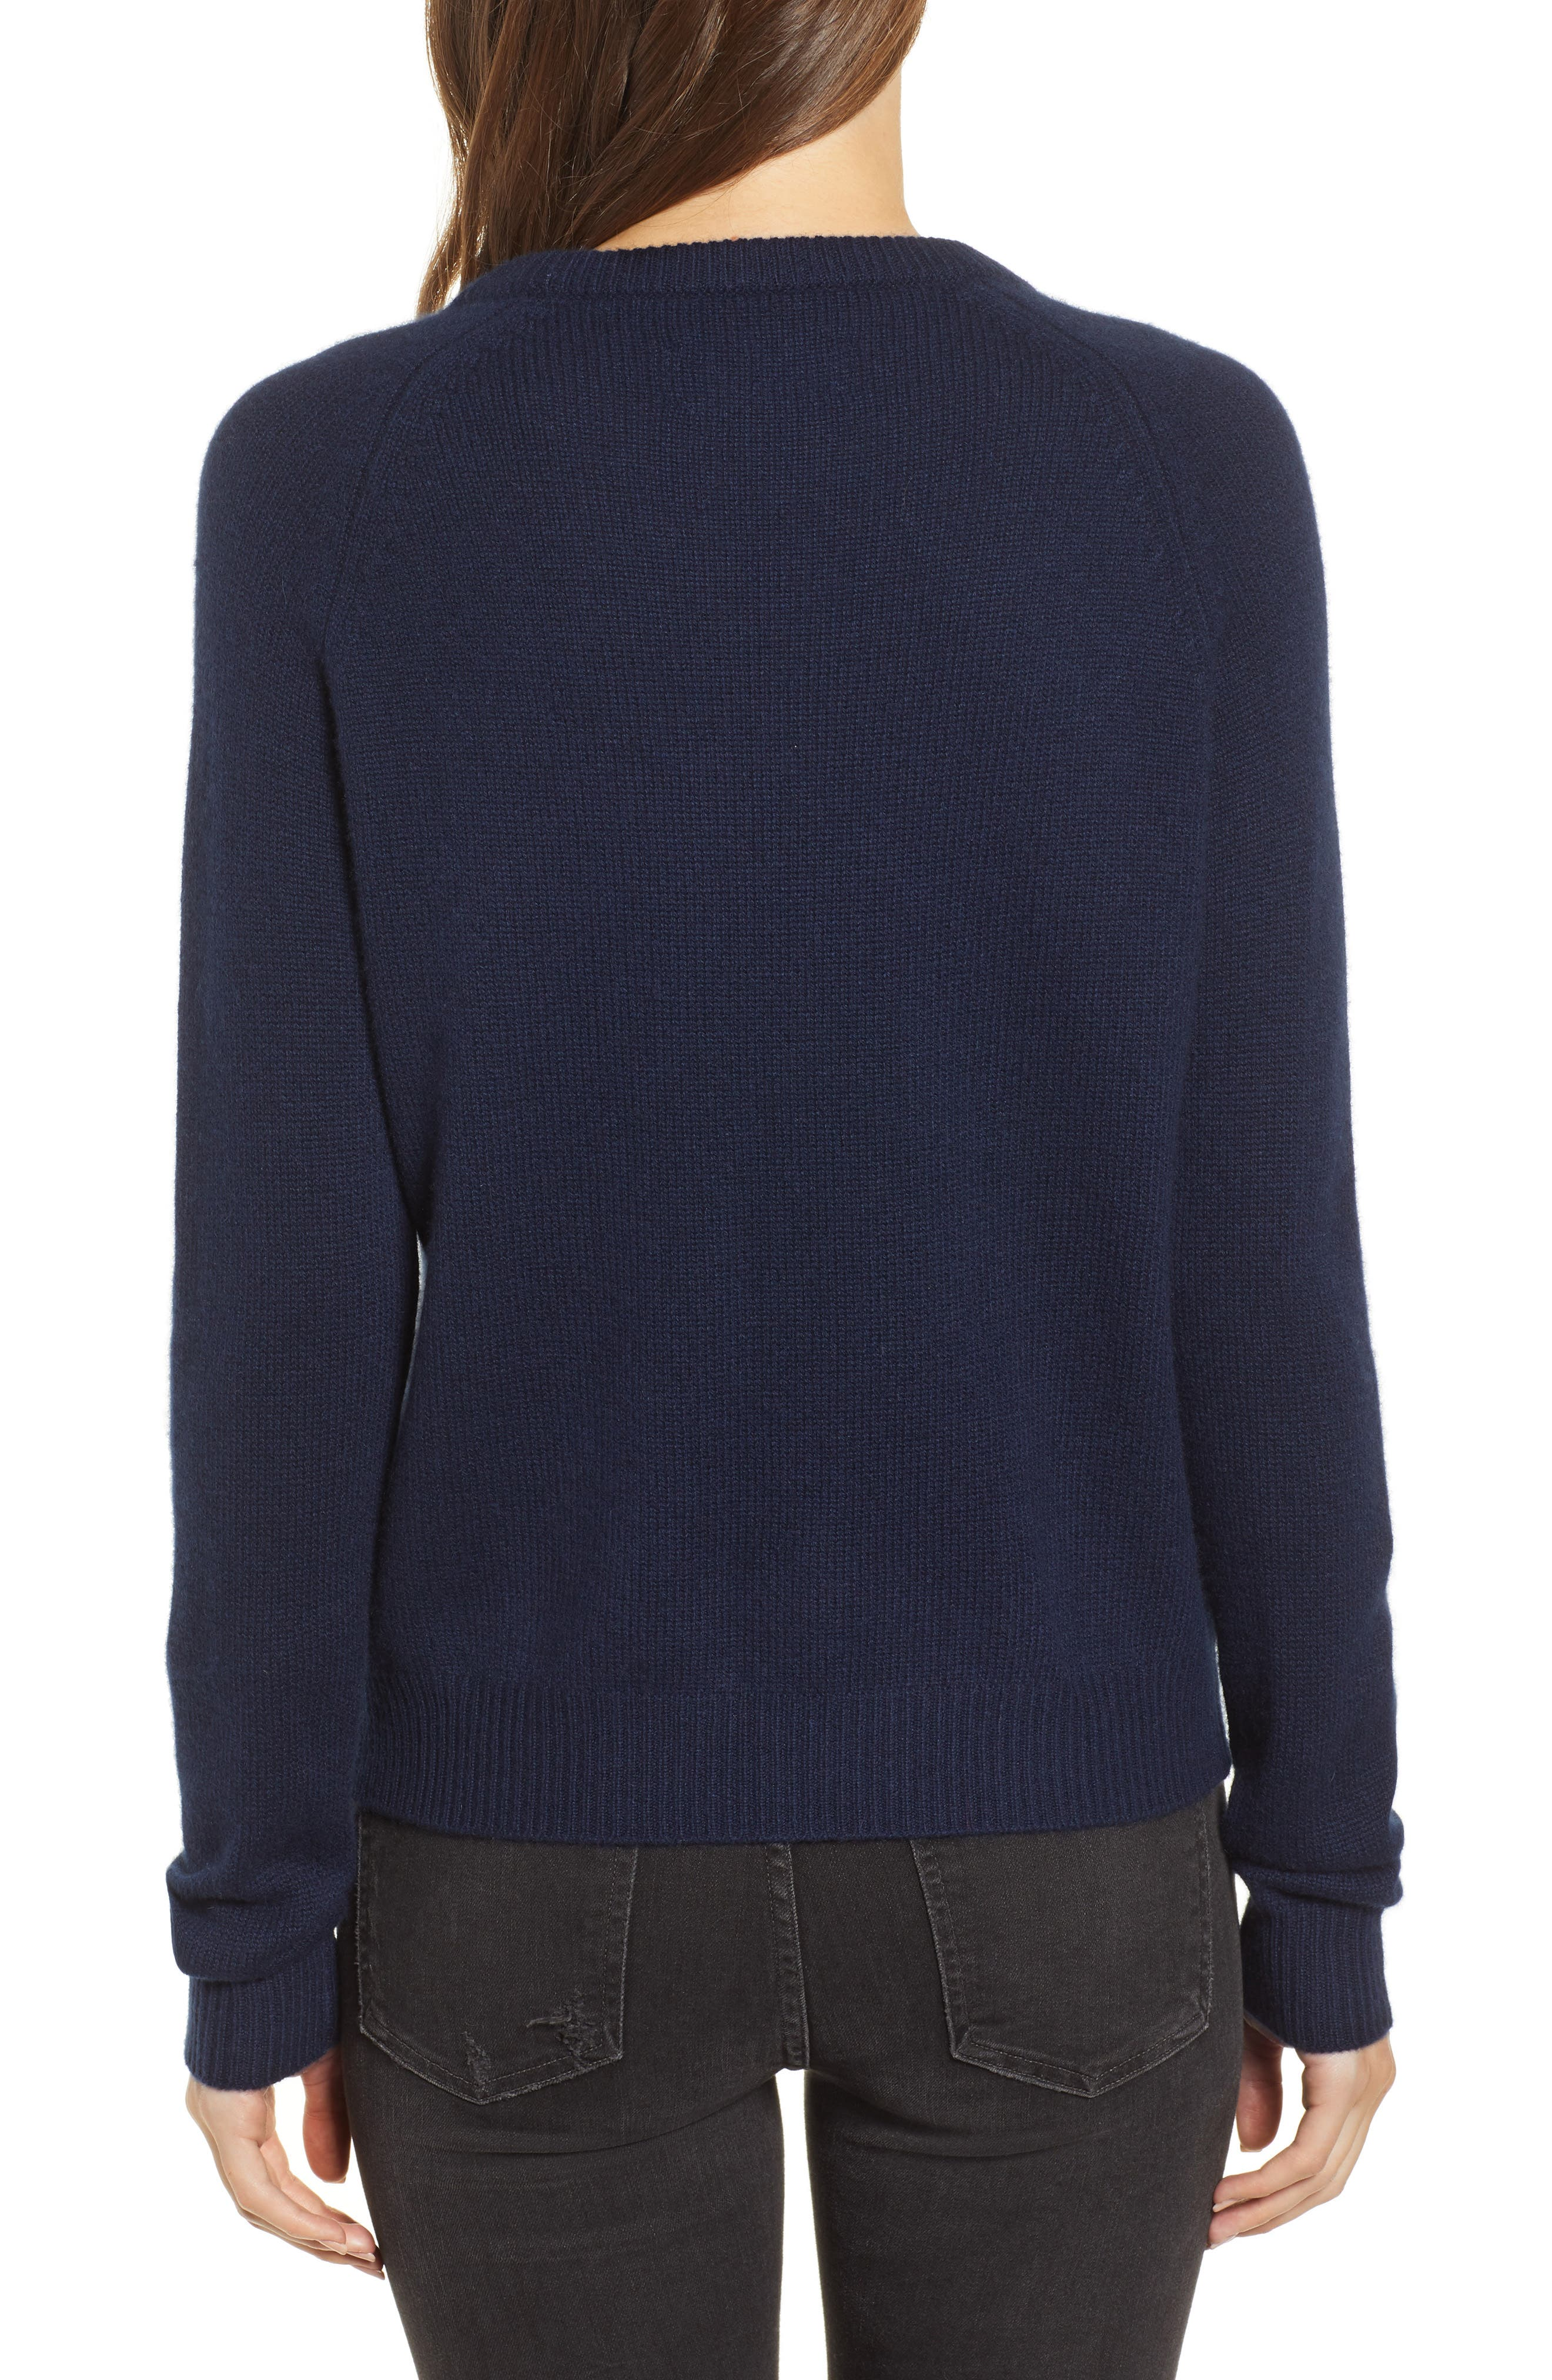 Baly Bis C Cashmere Sweater,                             Alternate thumbnail 2, color,                             001